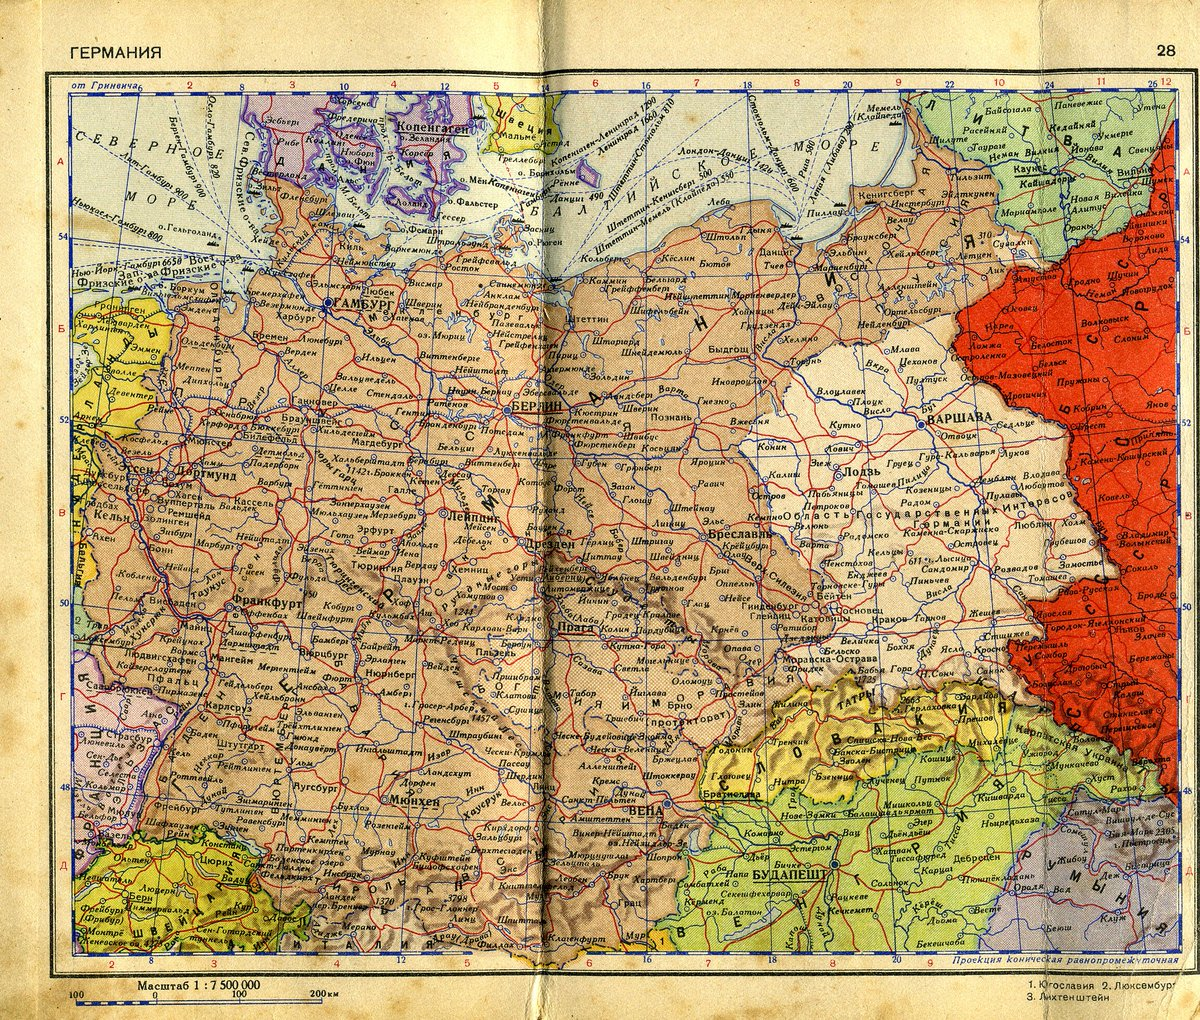 Map Of Germany 1940.Rati Shubladze Pa Twitter Map Of Nazi Germany In 1940 Russian